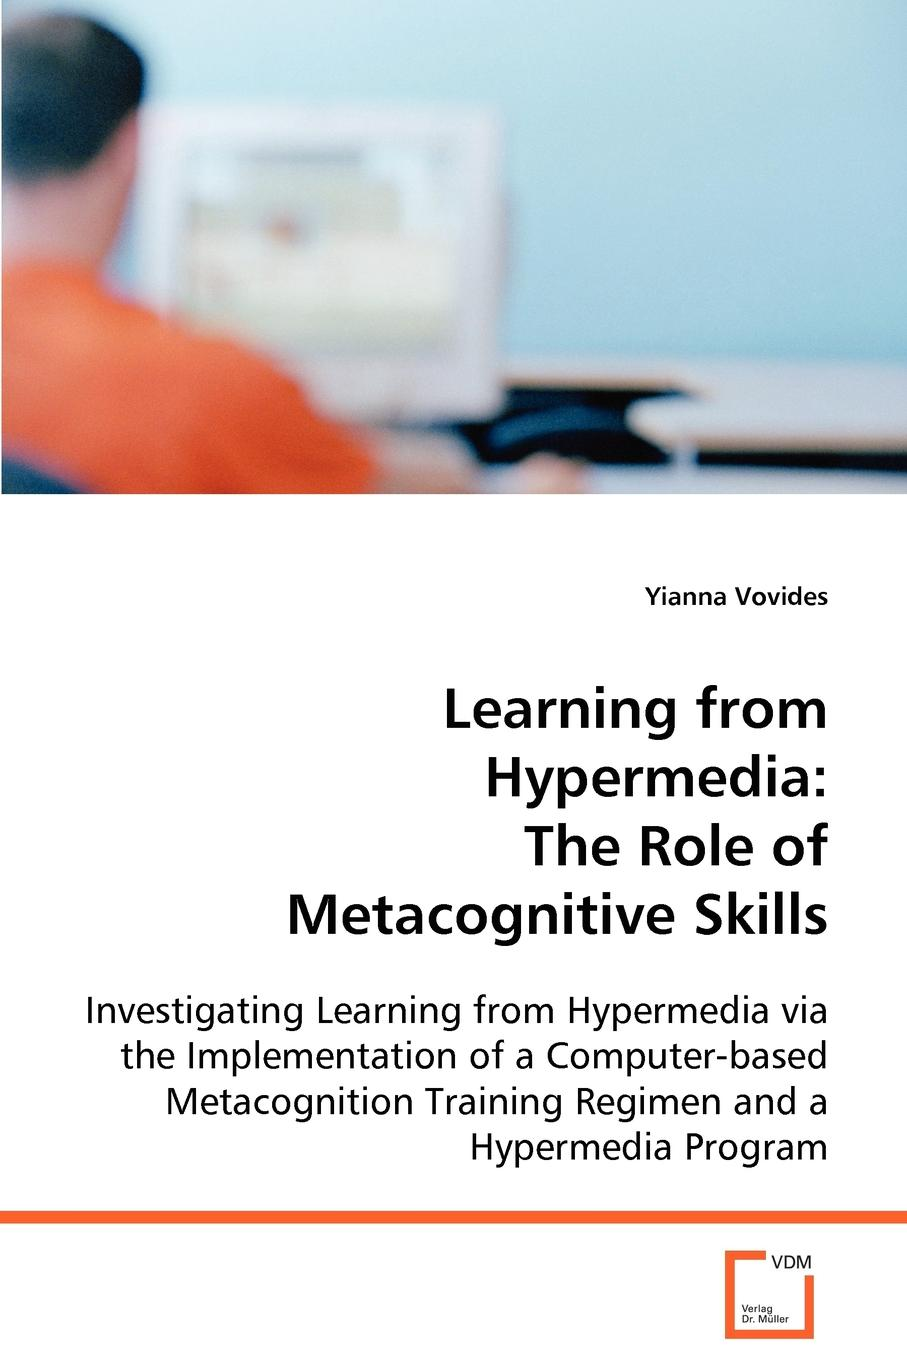 Yianna Vovides Learning from Hypermedia. The Role of Metacognitive Skills недорго, оригинальная цена